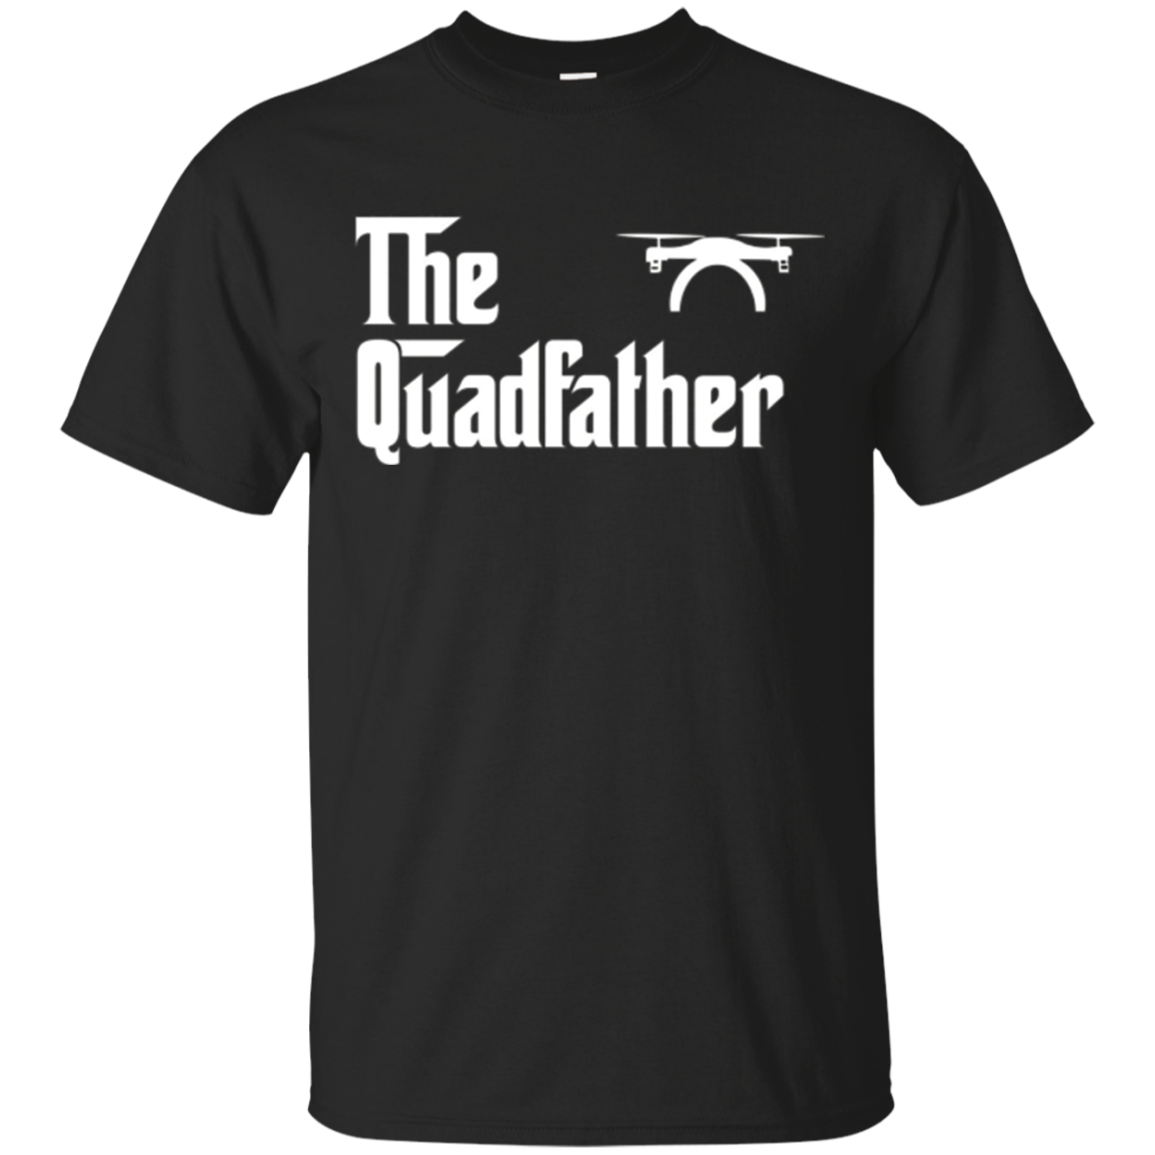 The Quadfather Drone Gift Shirt for Christmas